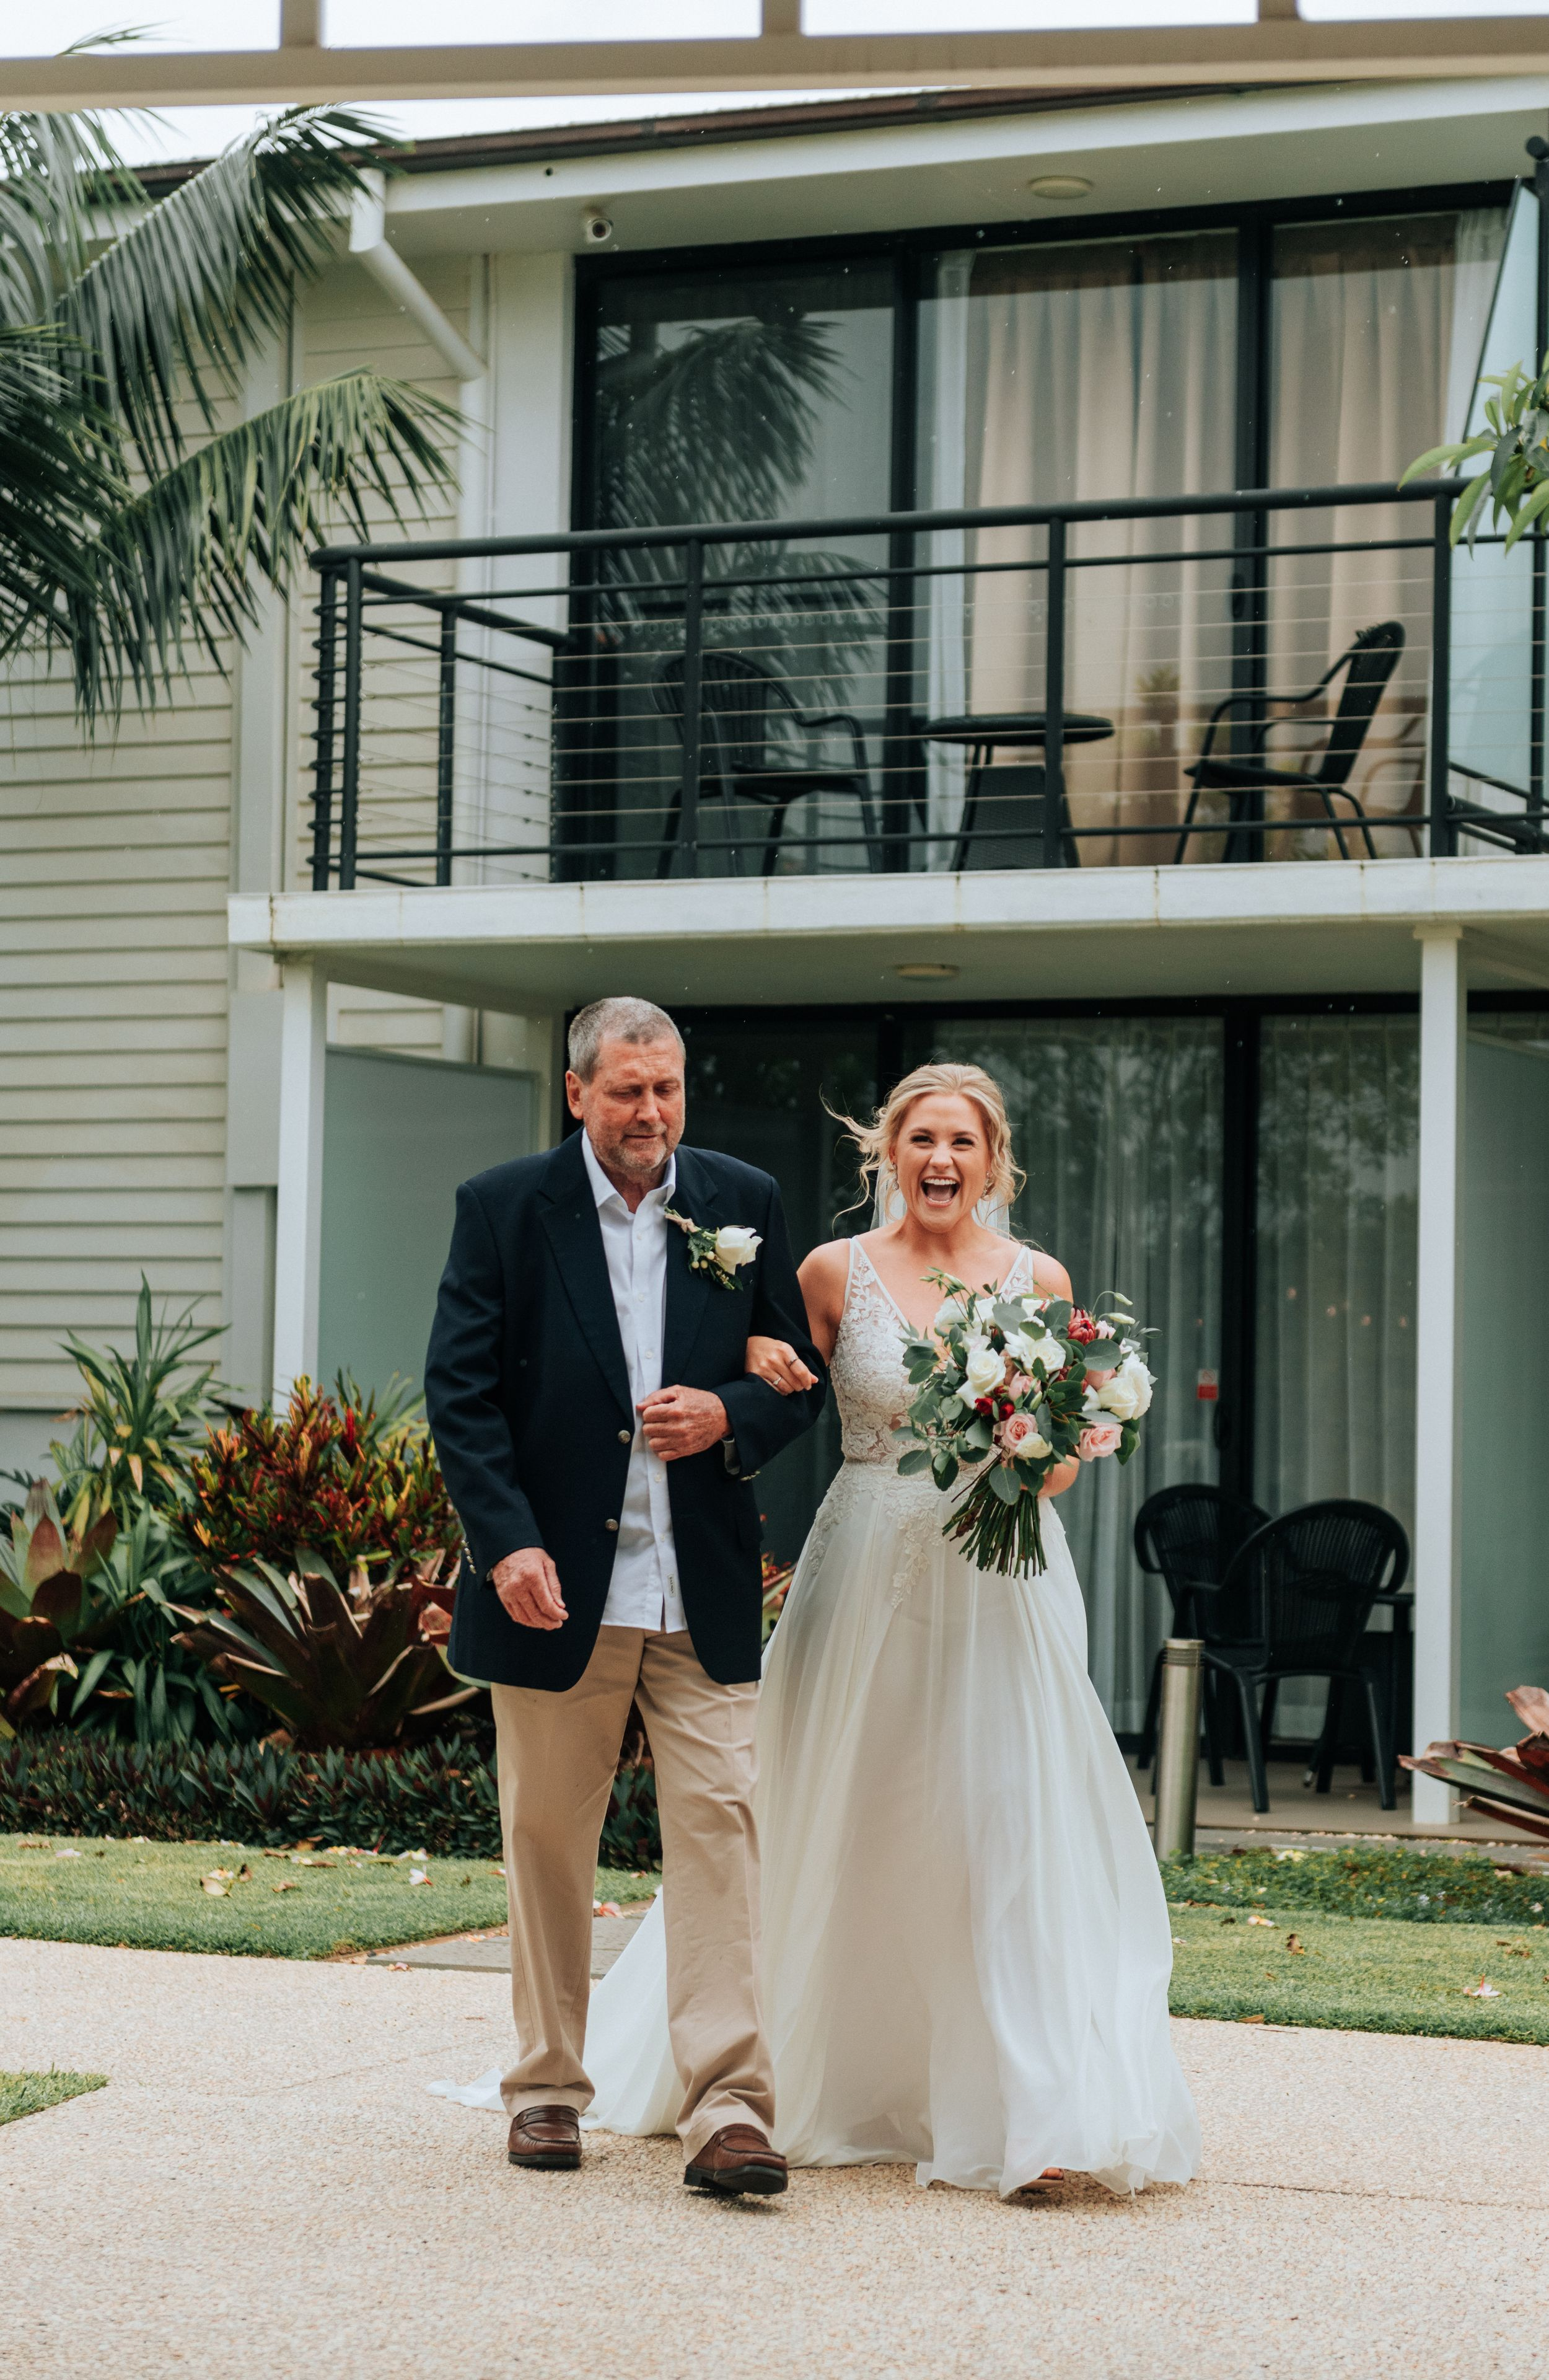 Sails Port Macquarie wedding